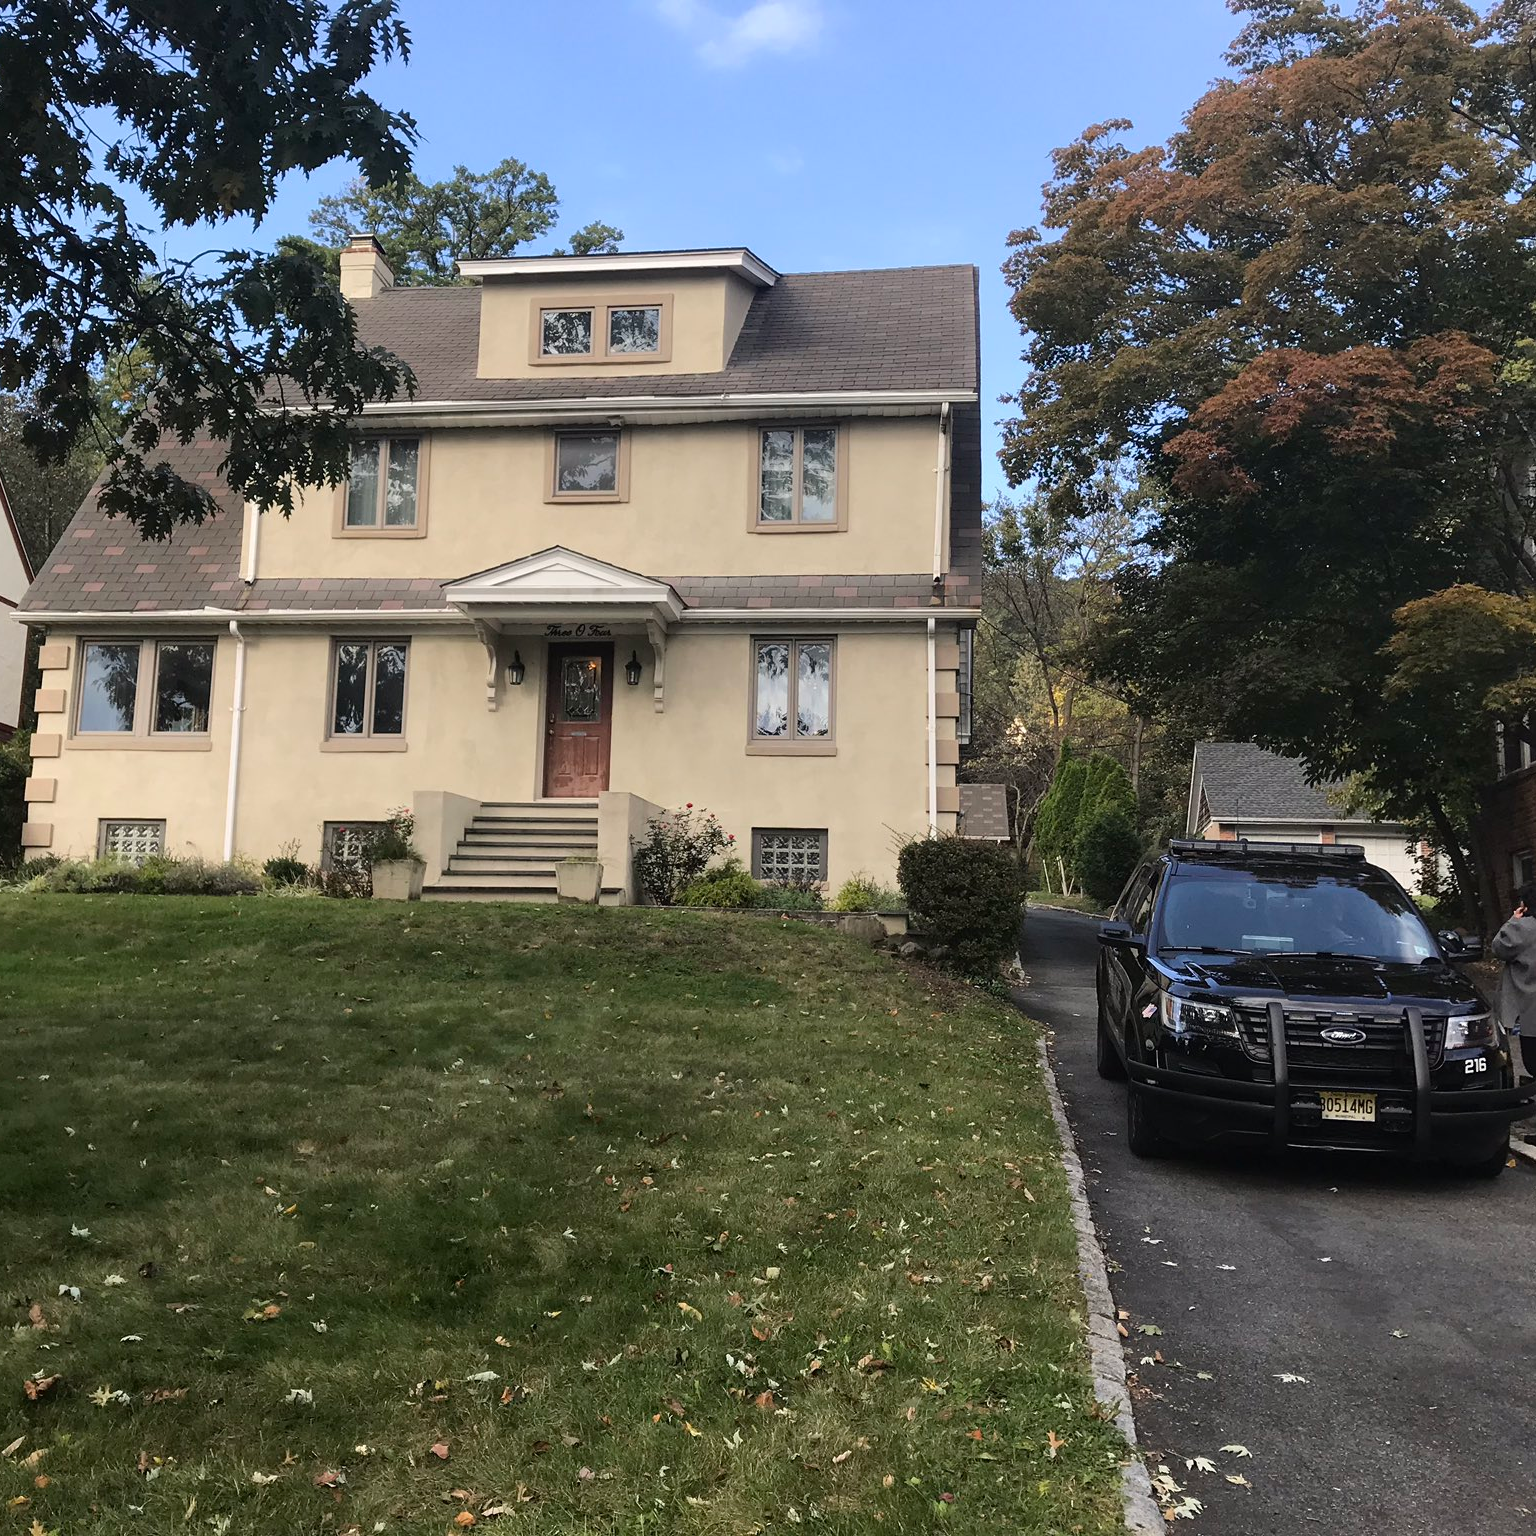 Essex County Prosecutor's Office investigates homicide in Montclair